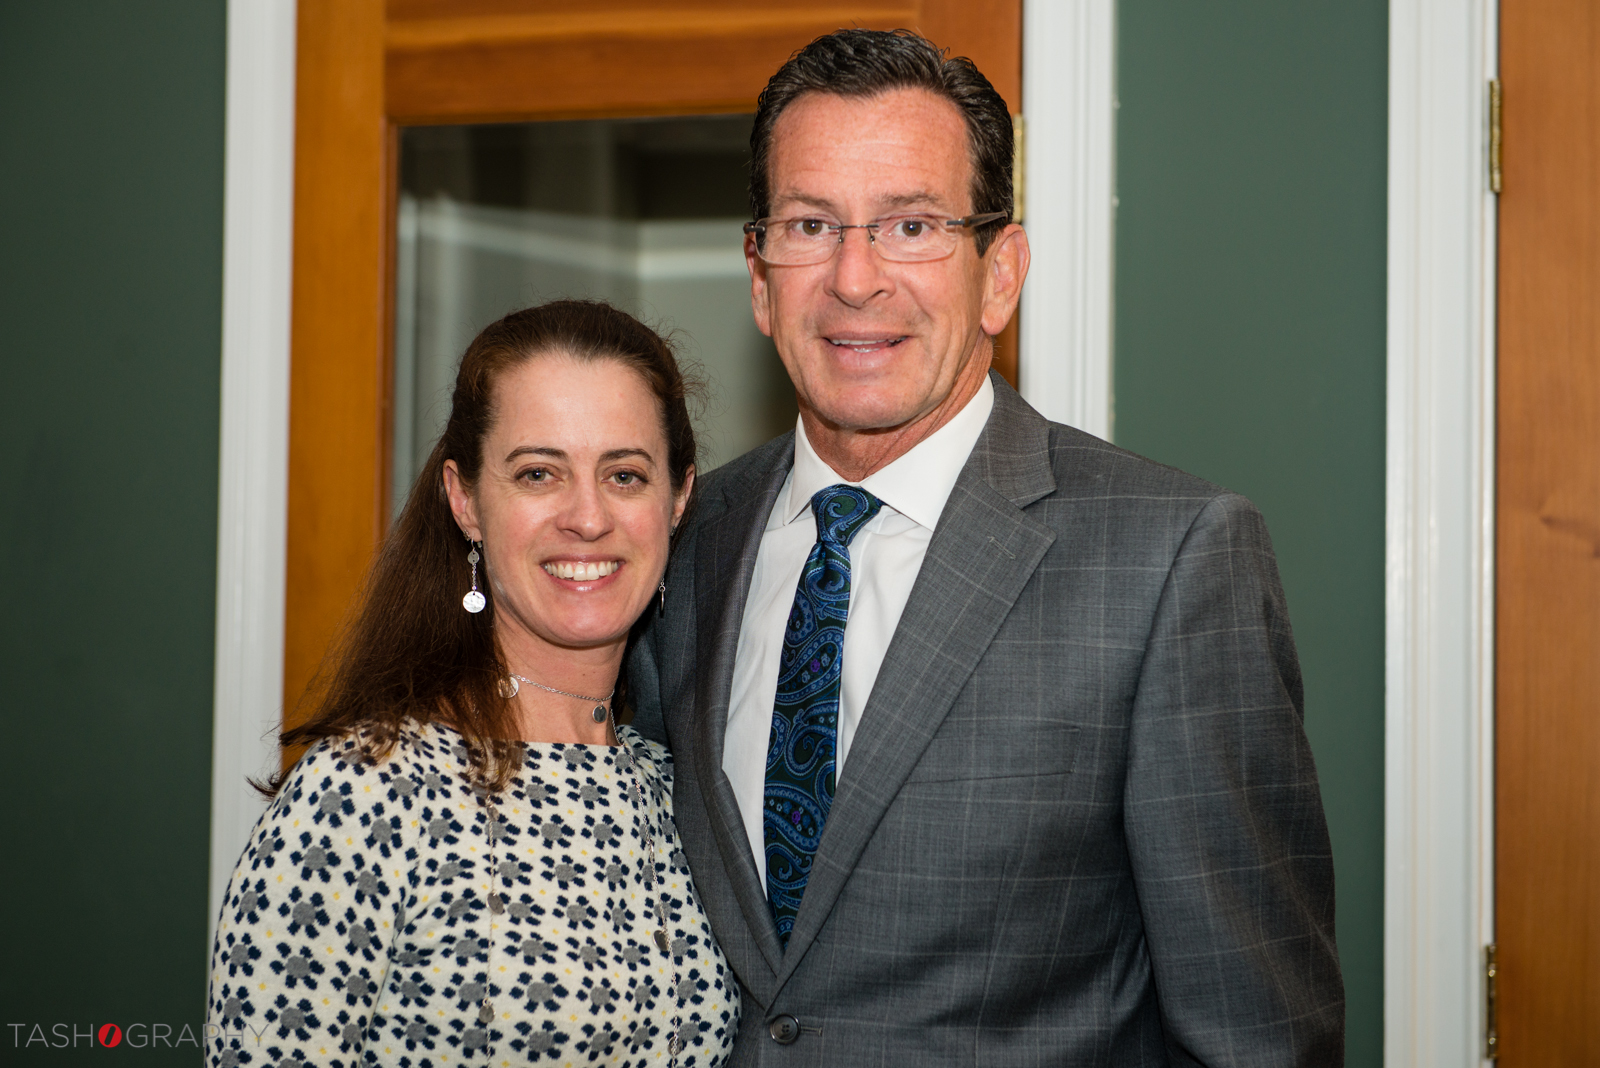 Gov. Malloy and Eagle Hill Staff